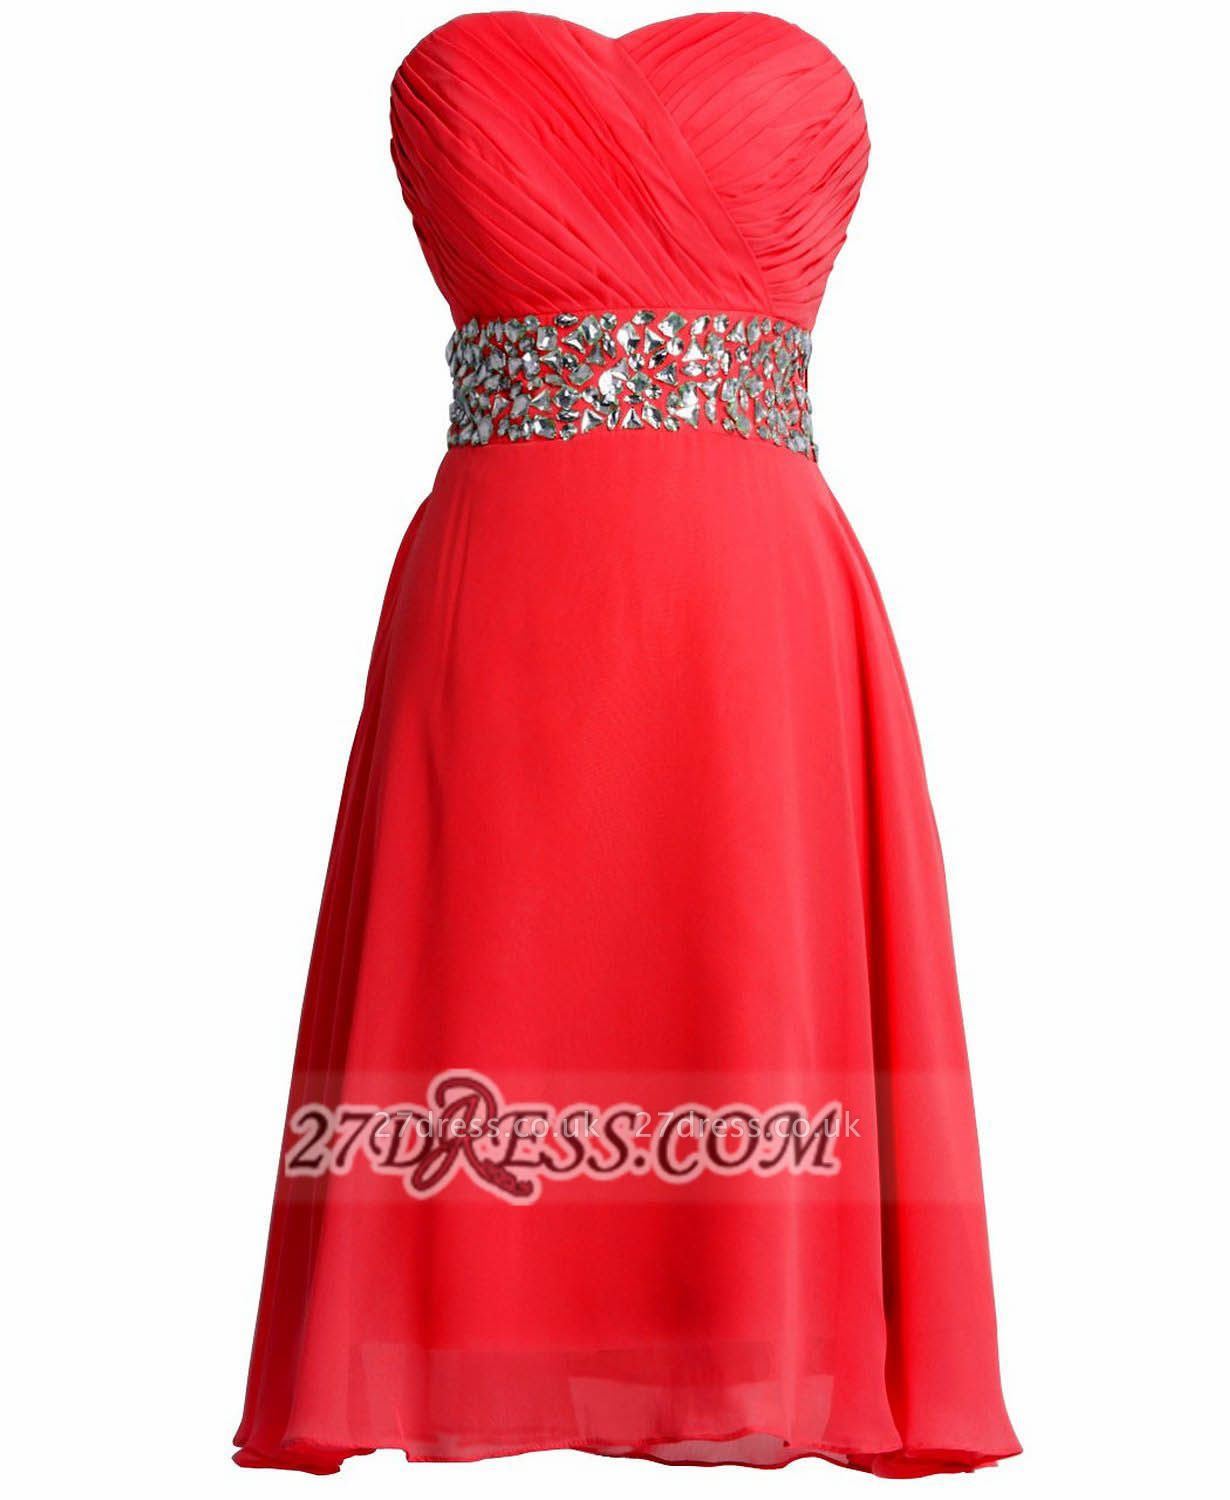 Sexy Semi-sweetheart Sleeveless Chiffon Cocktail Dress UK Zipper Crystals Red Short Homecoming Gown